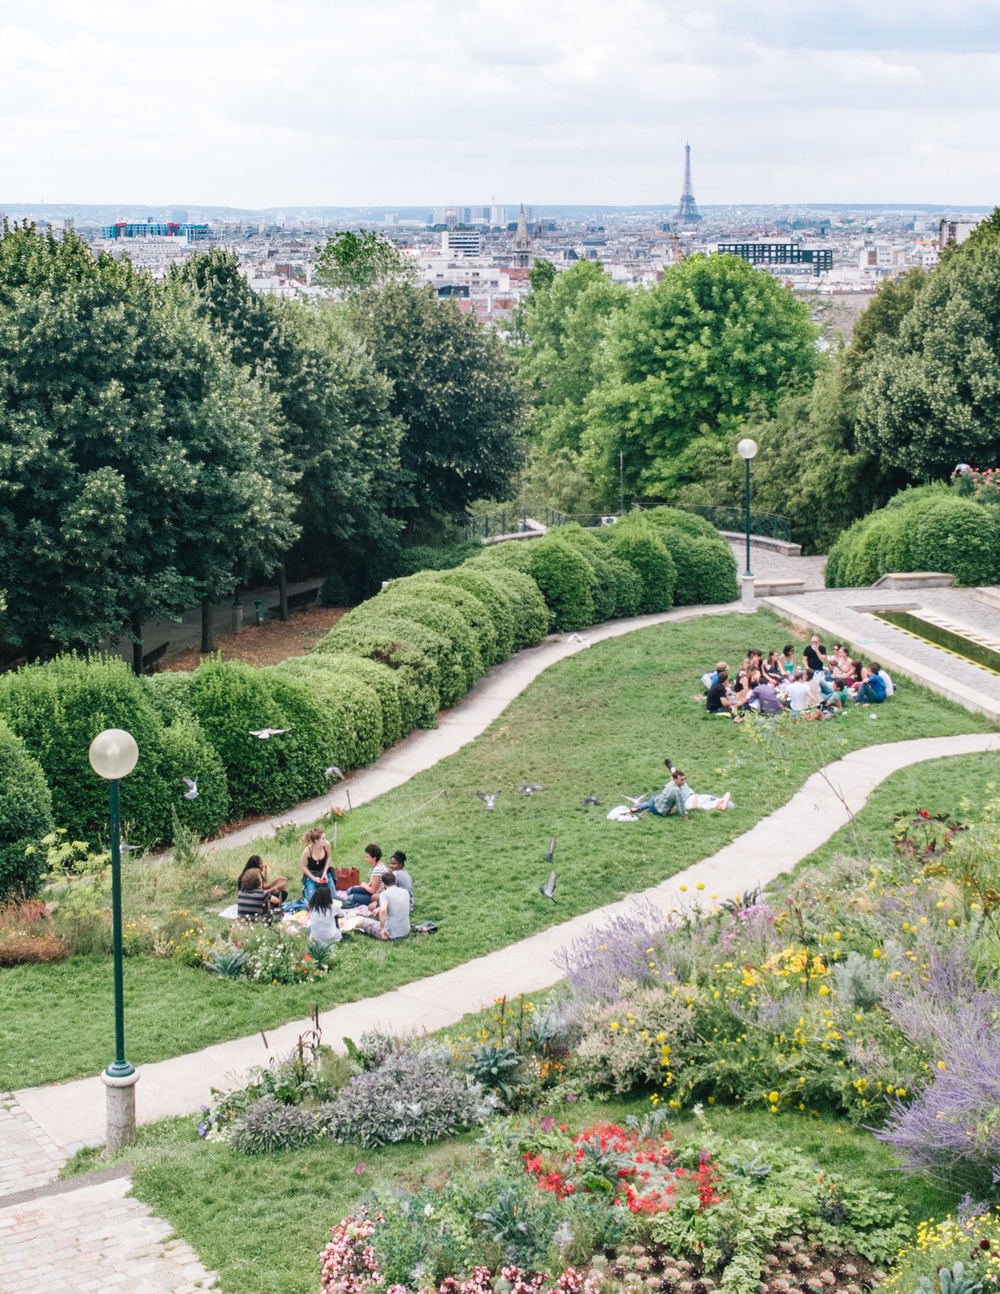 PARC DE BELLEVILLE     INSIDER TIP  | A favorite local hangout for lounging, picnicking and taking in the summer sun with a view of the entire city.    PHOTO TIP  |  Head to the highest point of the park for a view of the Eiffel Tower in your shot.